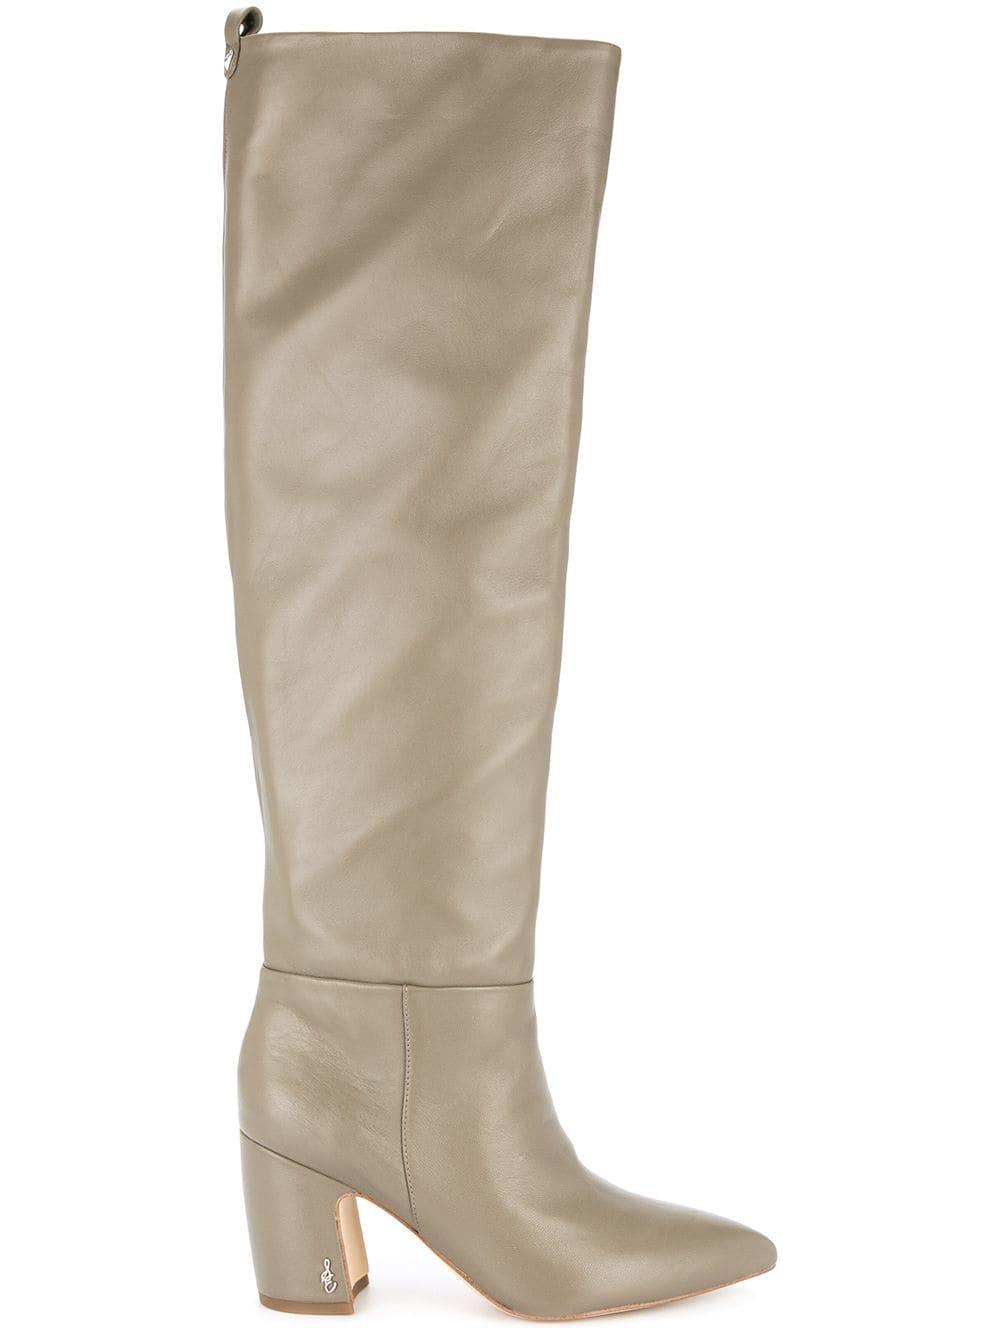 b681d004522 Grey calf leather and leather knee length boots from Sam Edelman featuring  a pointed toe